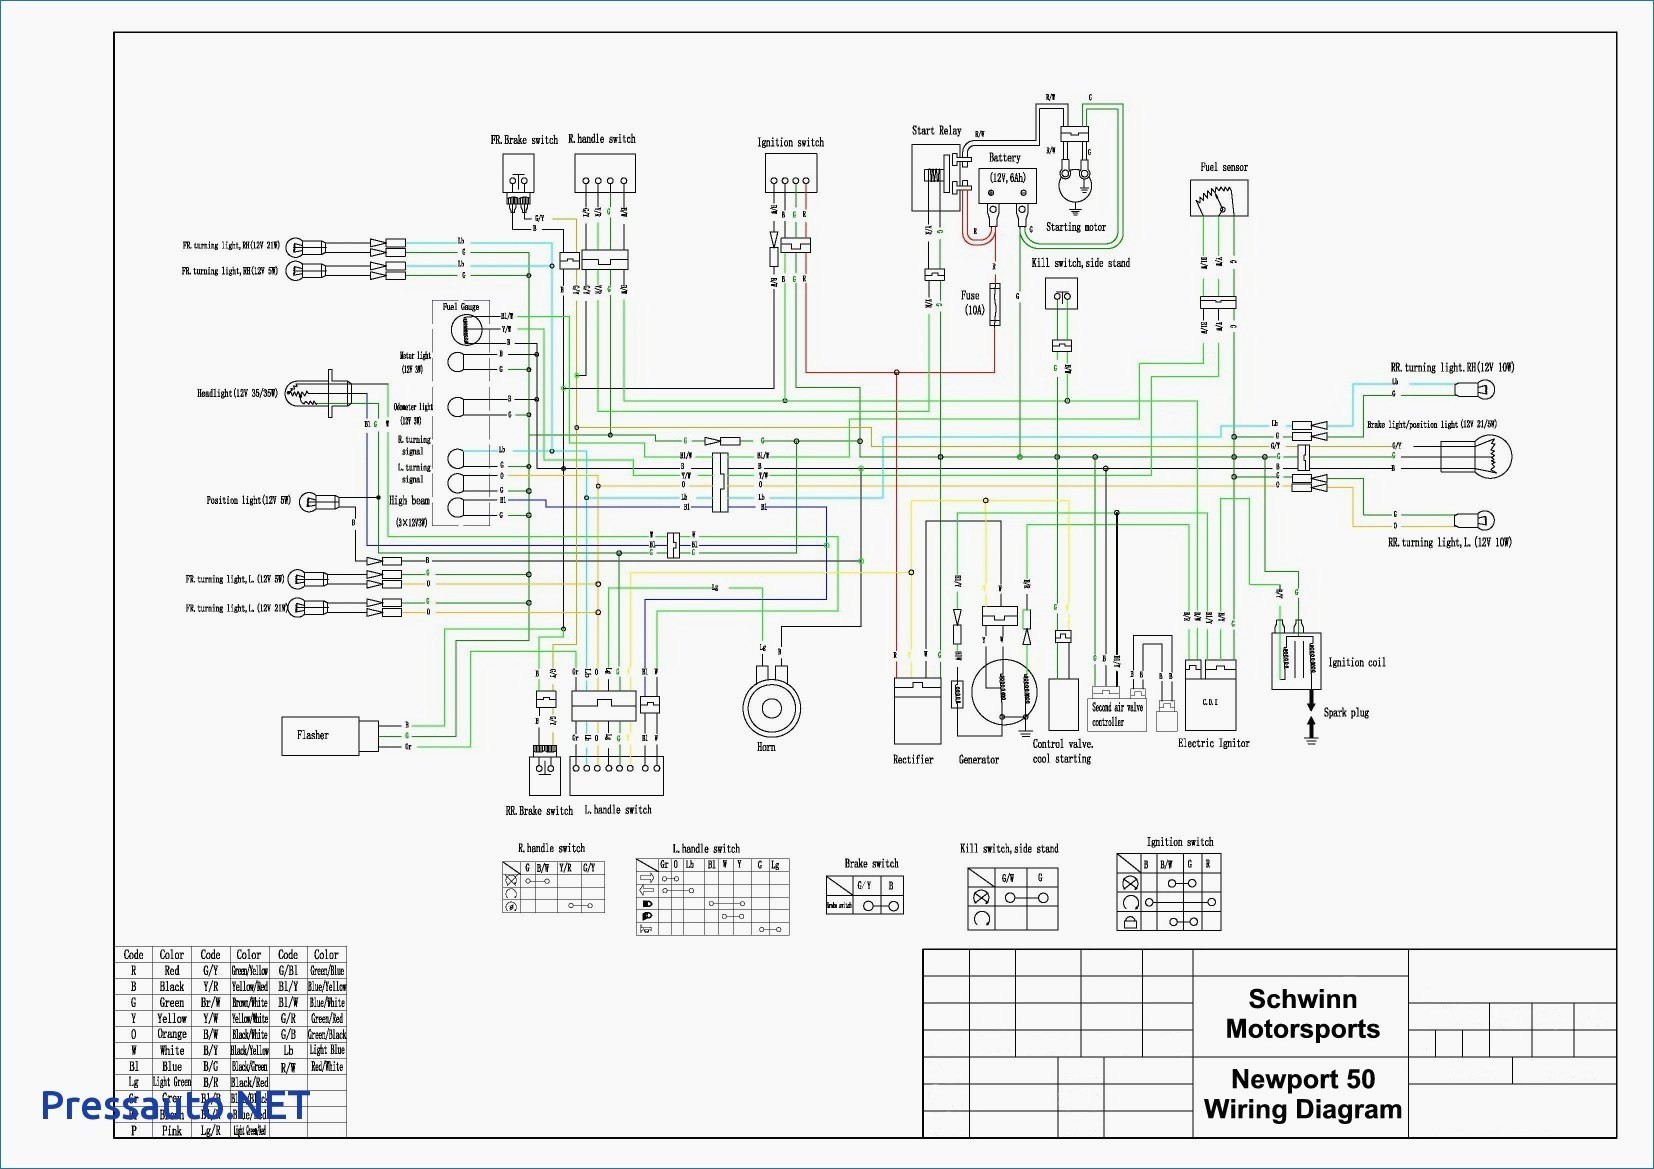 pride mobility victory scooter wiring diagram cat5 faceplate sample